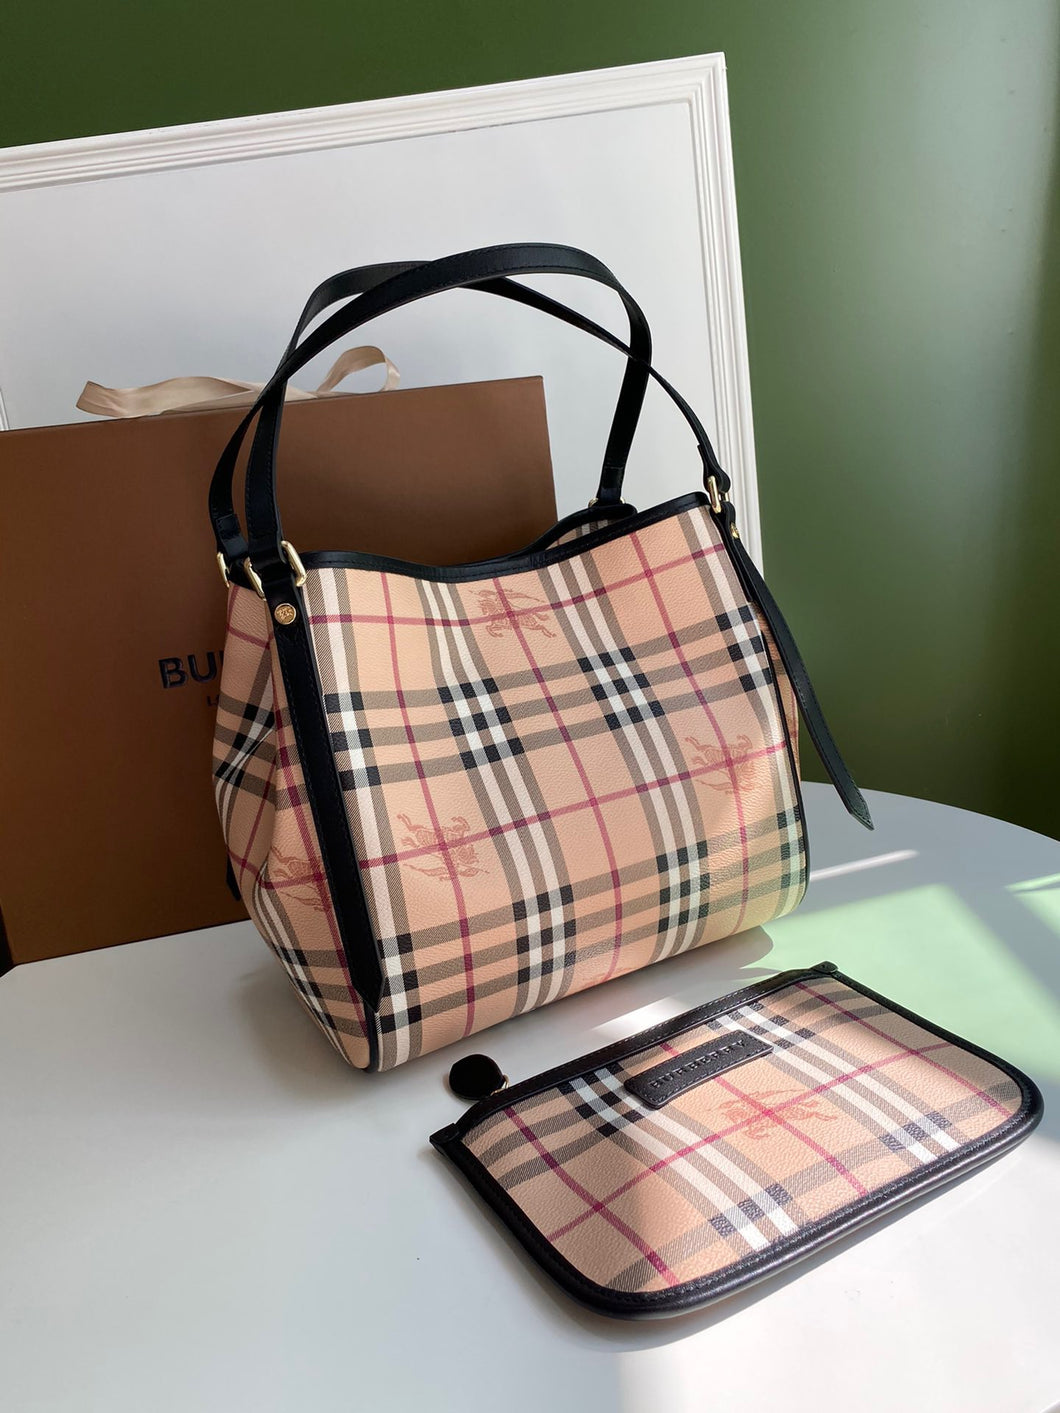 Bolsa Burberry House Check Tote